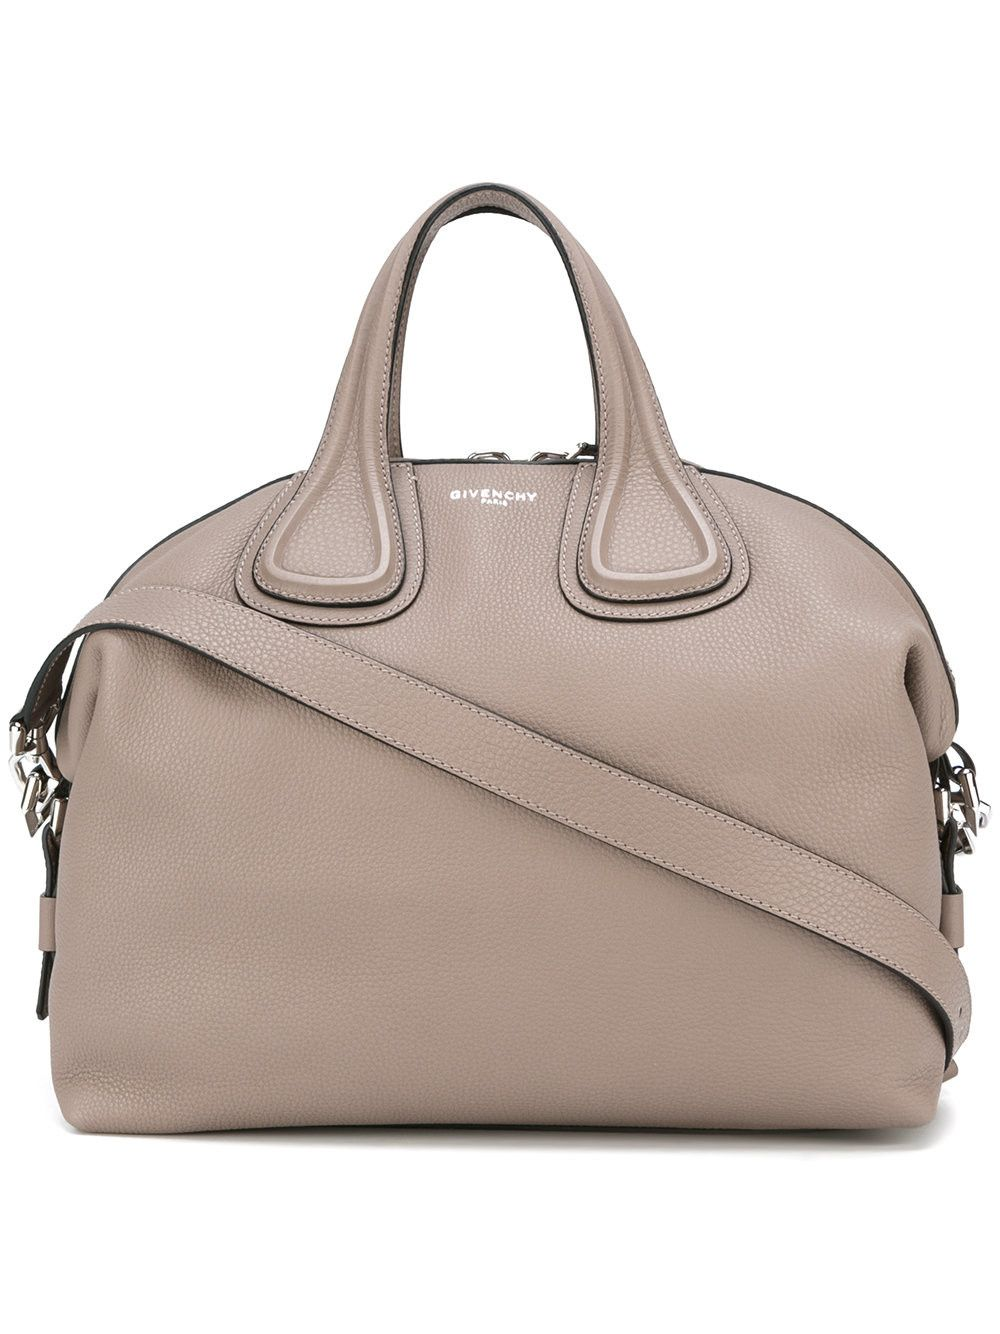 797b4c8508 GIVENCHY . #givenchy #bags #shoulder bags #hand bags #leather #tote ...